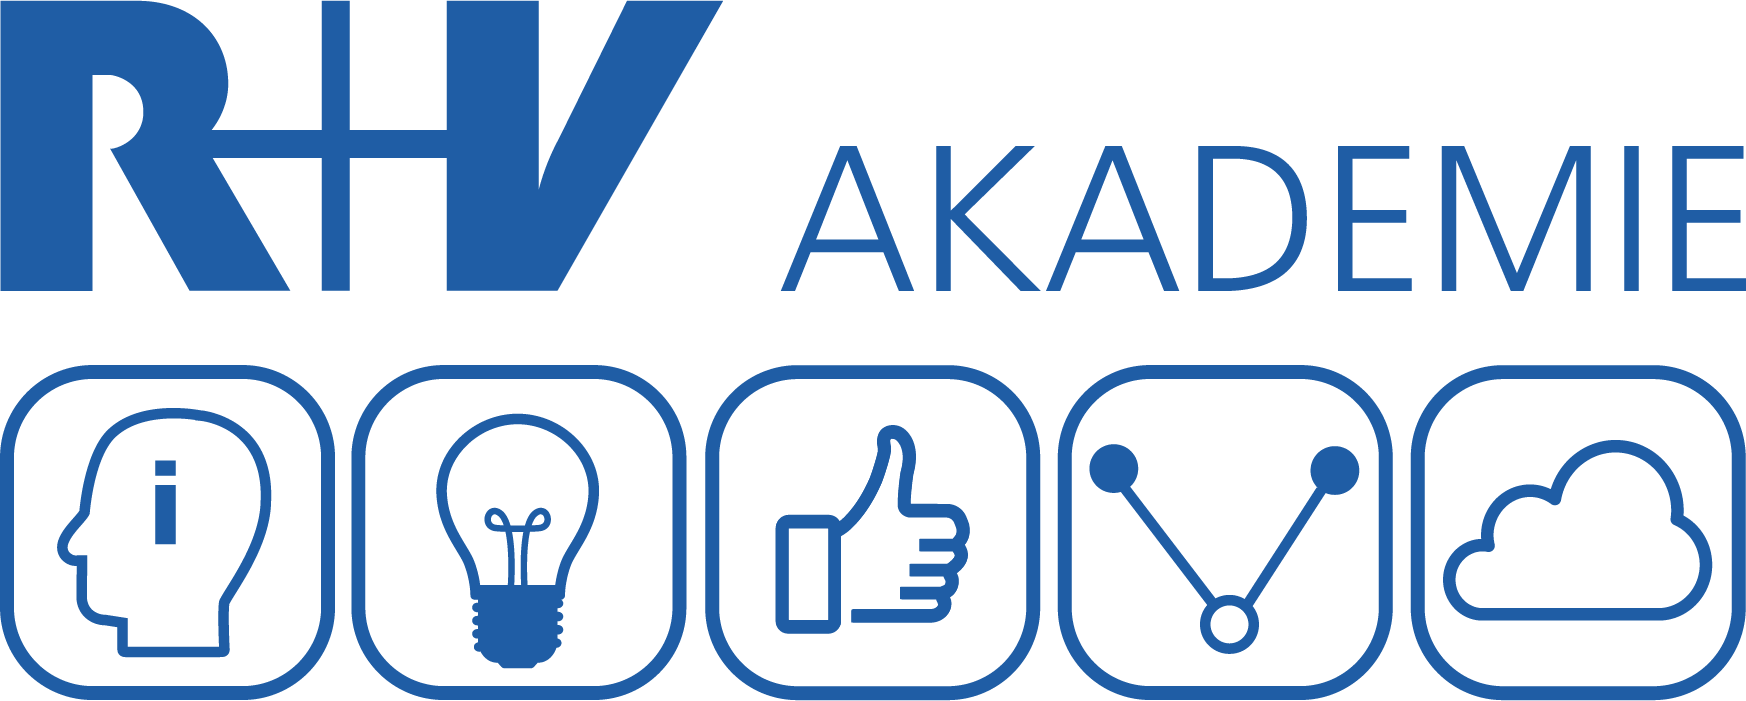 Akademie_Logo_final_hor.png